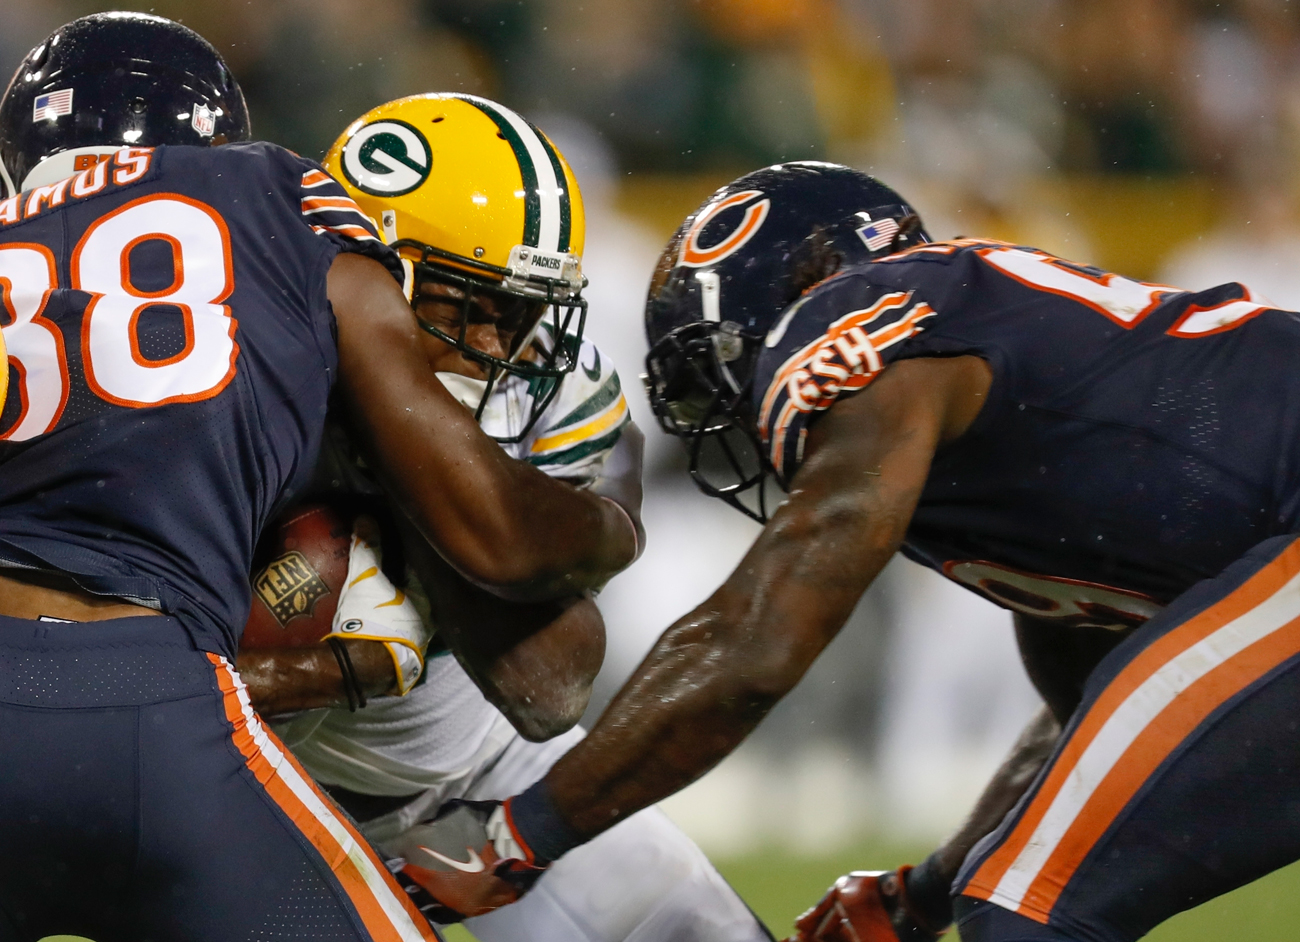 Bears linebacker Danny Trevathan was suspended two games for this helmet-to-helmet hit on Davante Adams.